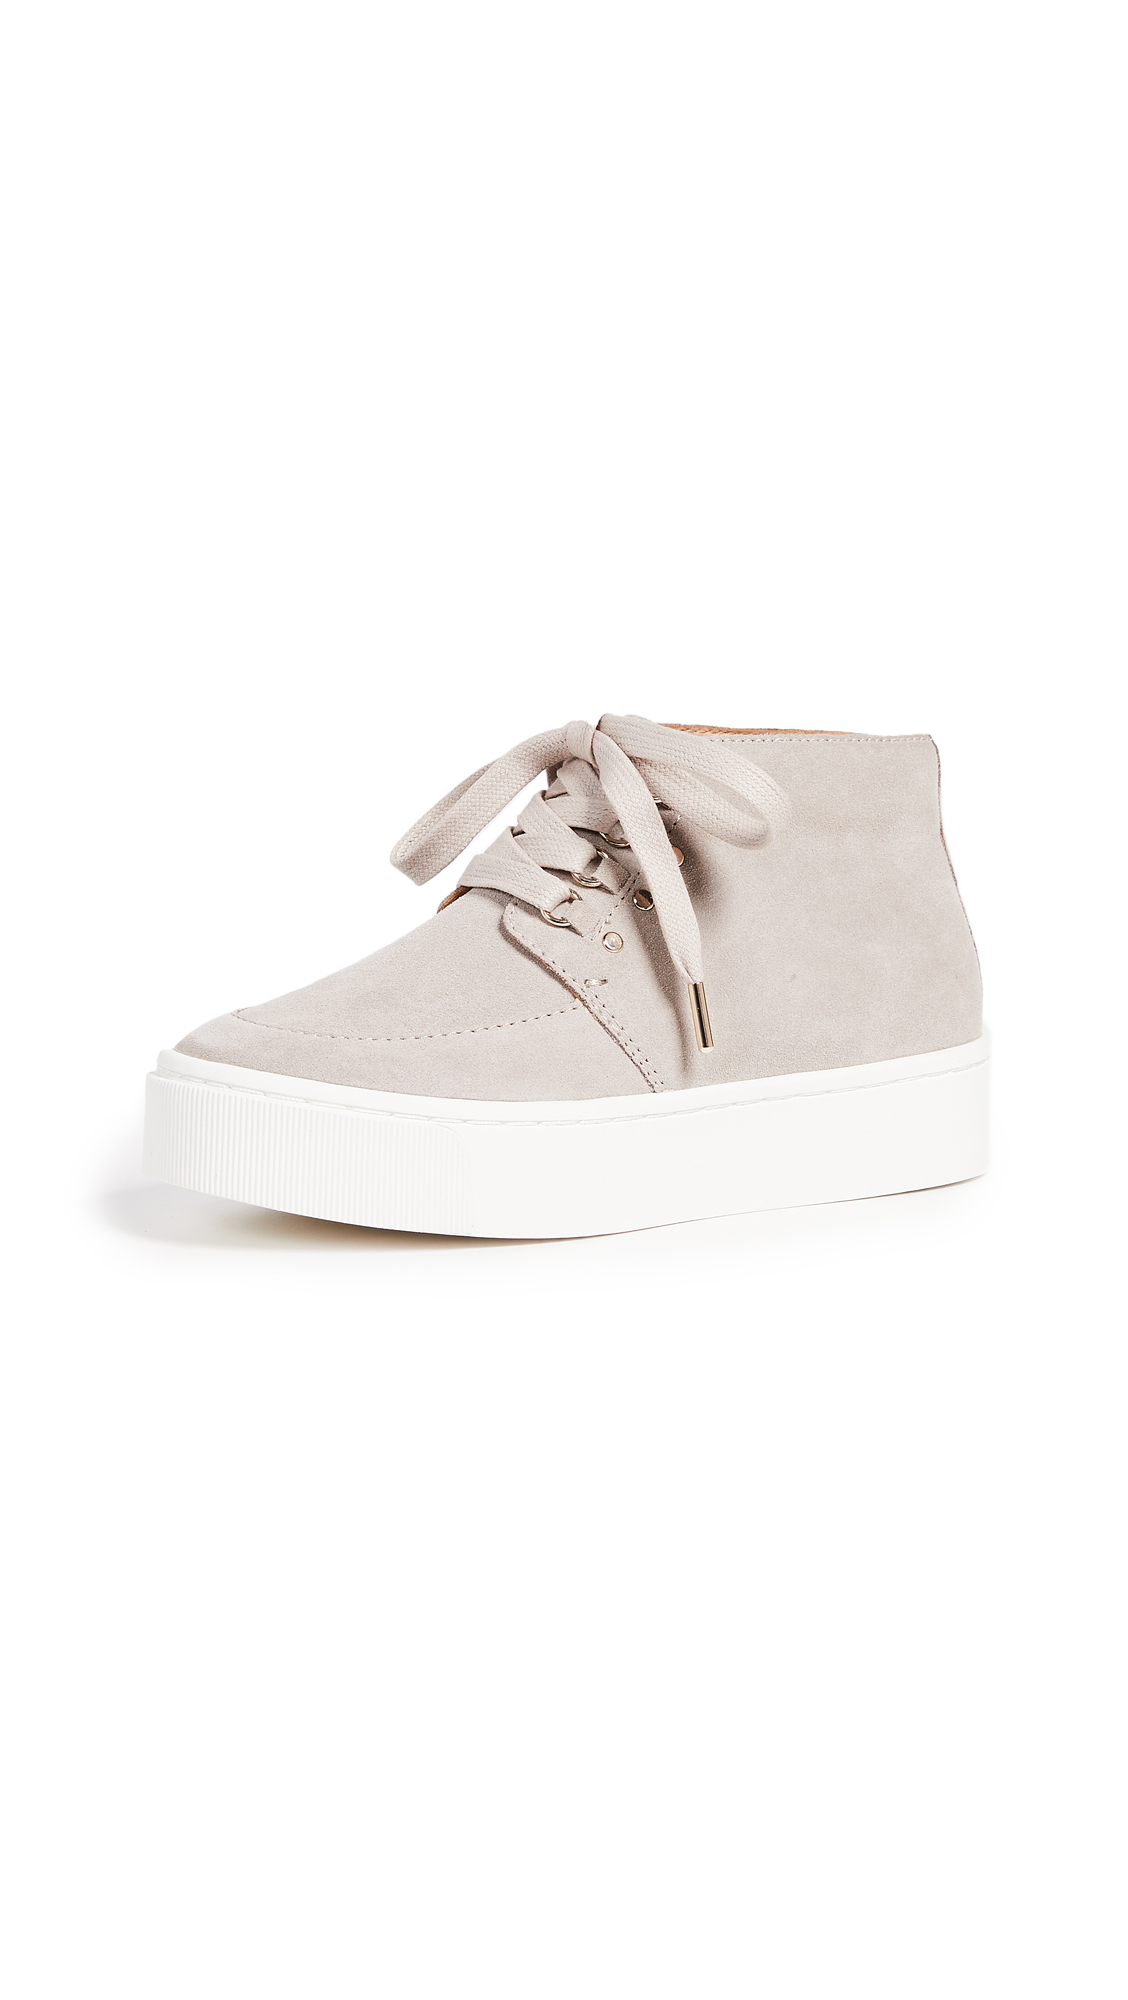 Joie Hillerson Sneakers